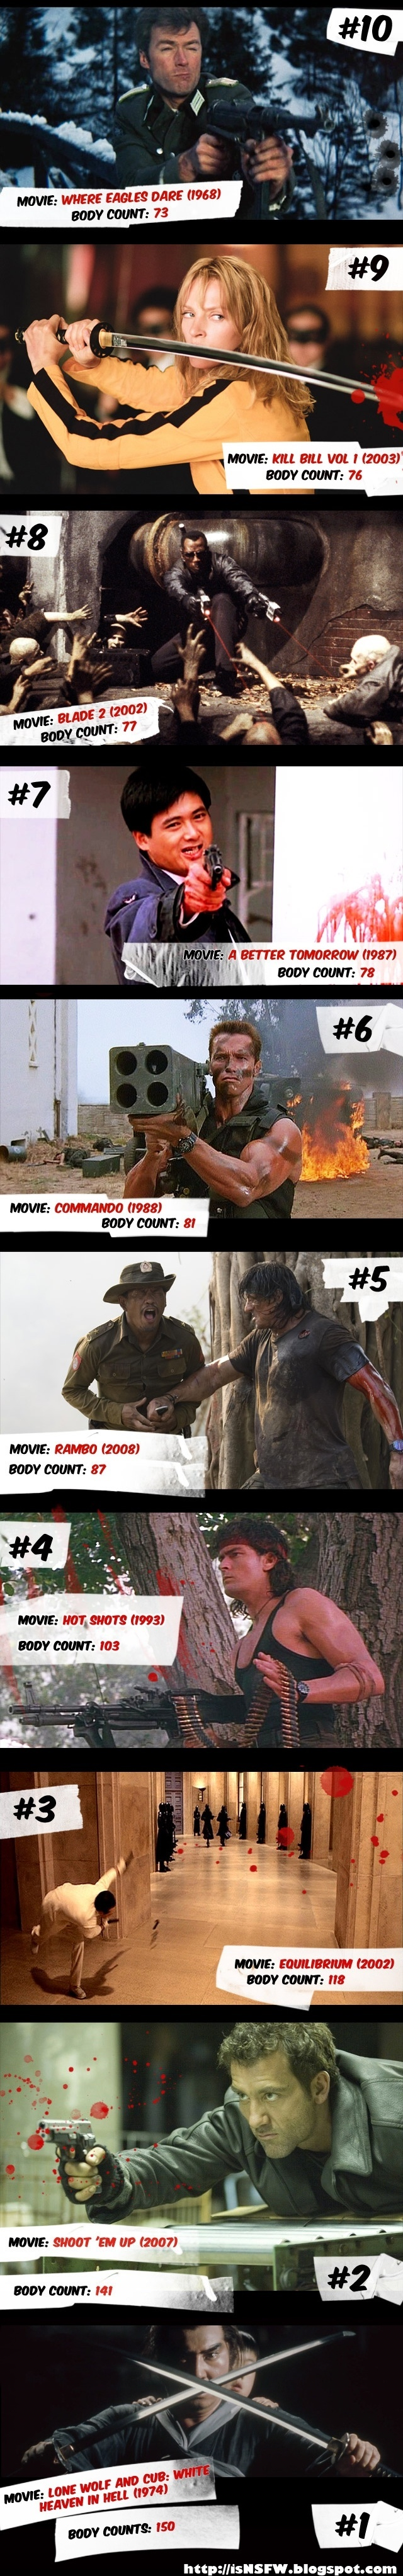 Top 10 Highest Body Count Action Movie Characters